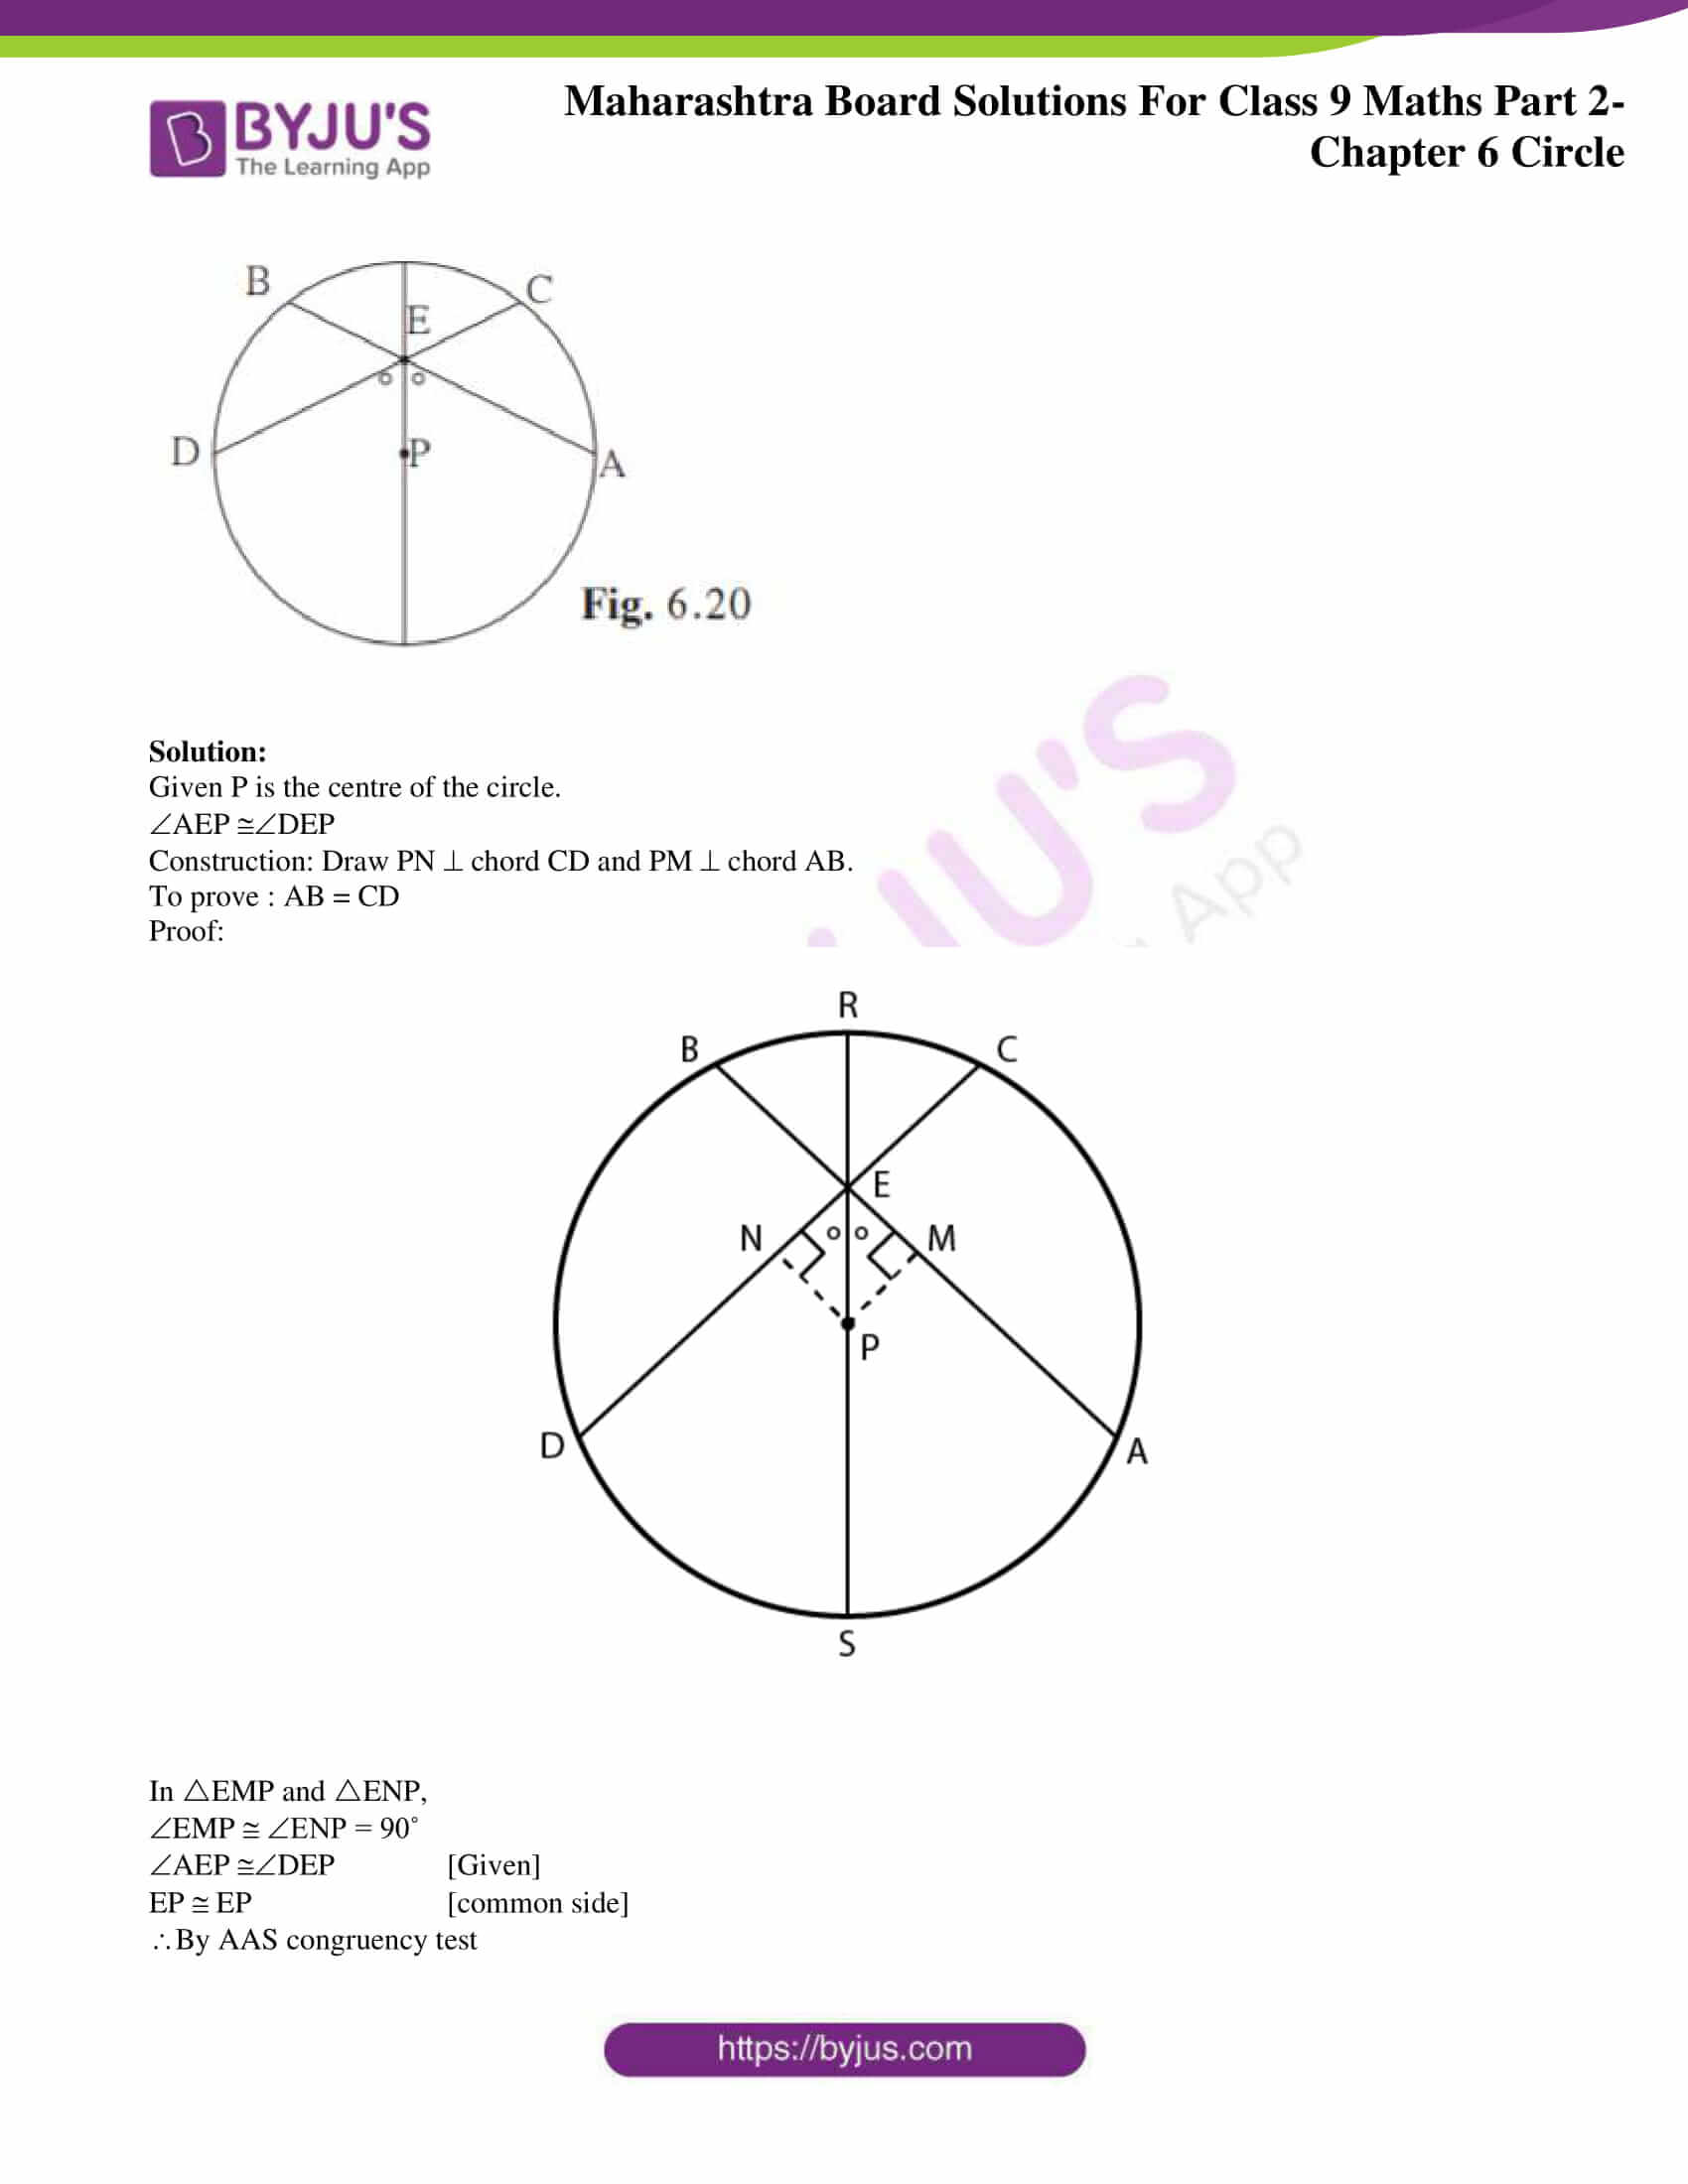 msbshse solutions for class 9 maths part 2 chapter 6 28